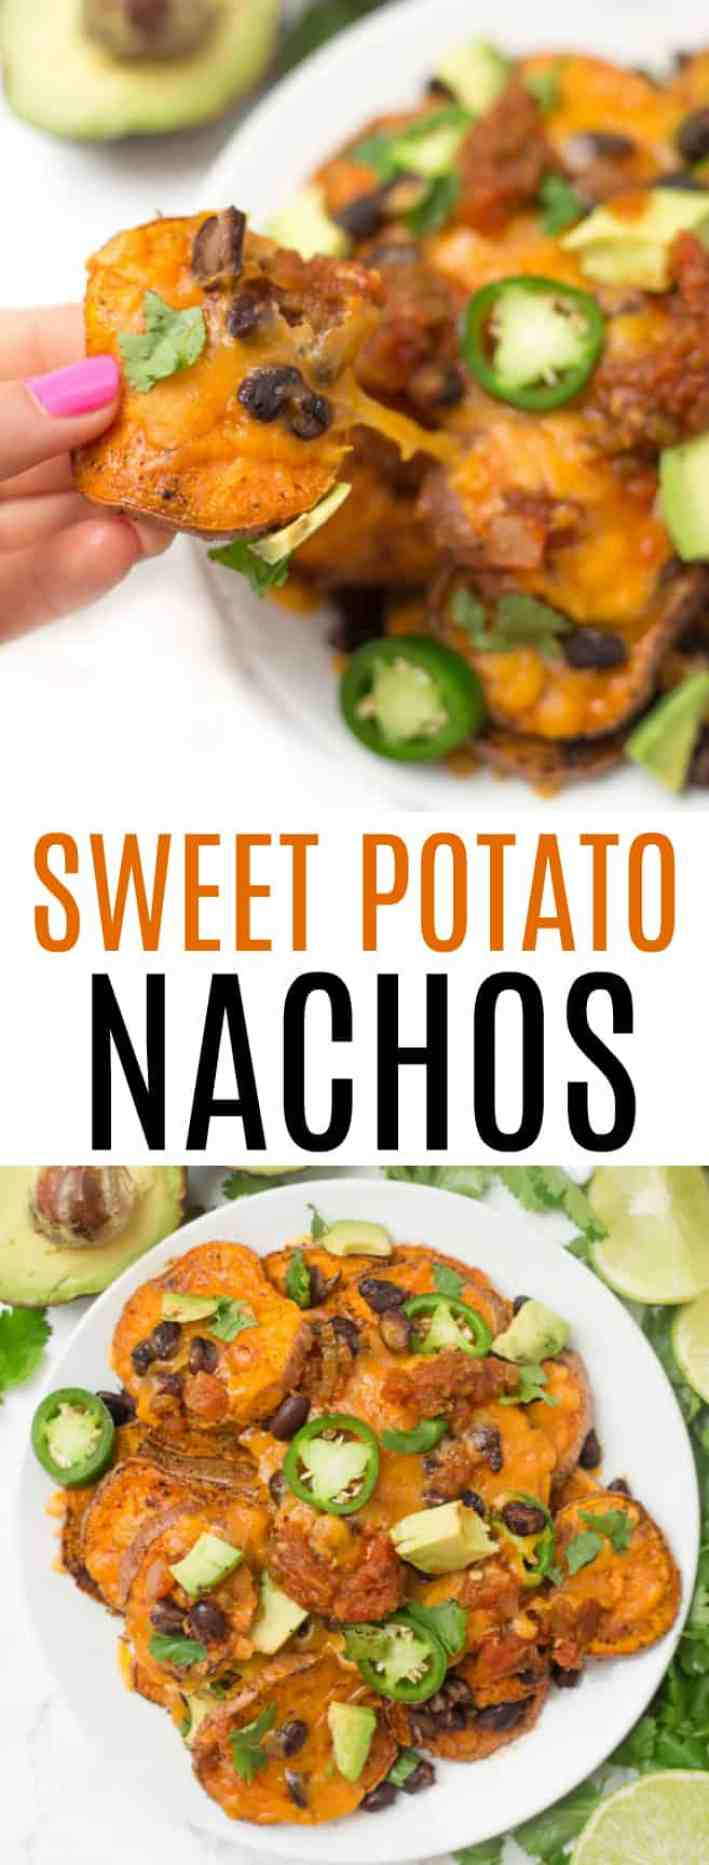 Loaded sweet potato nachos that are even better than traditional nachos! Healthy nachos with sweet potato, avocado, black beans, and melty cheese- what's not to love?!